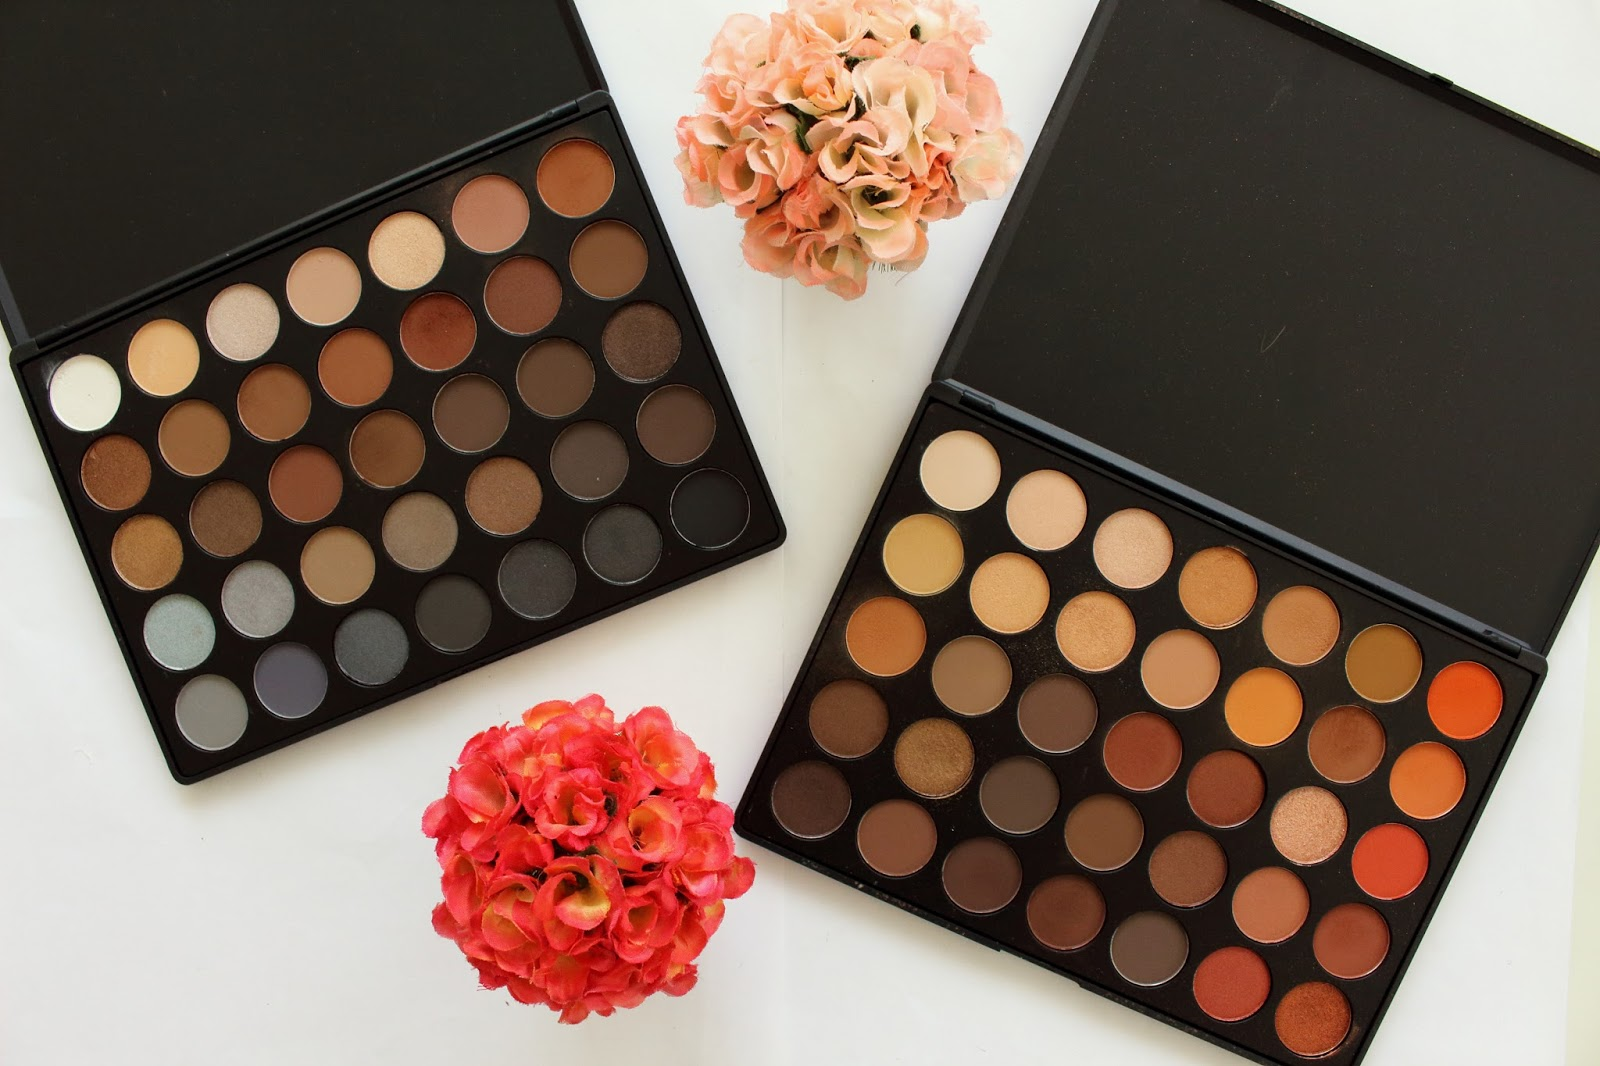 Morphe 35k eyeshadow palette review beauty in bold - I Have Had The Palette For A While Now But It Took Me So Long To Get On The Review Wagon Because I Didn T Want To Write About Something That Is Sold